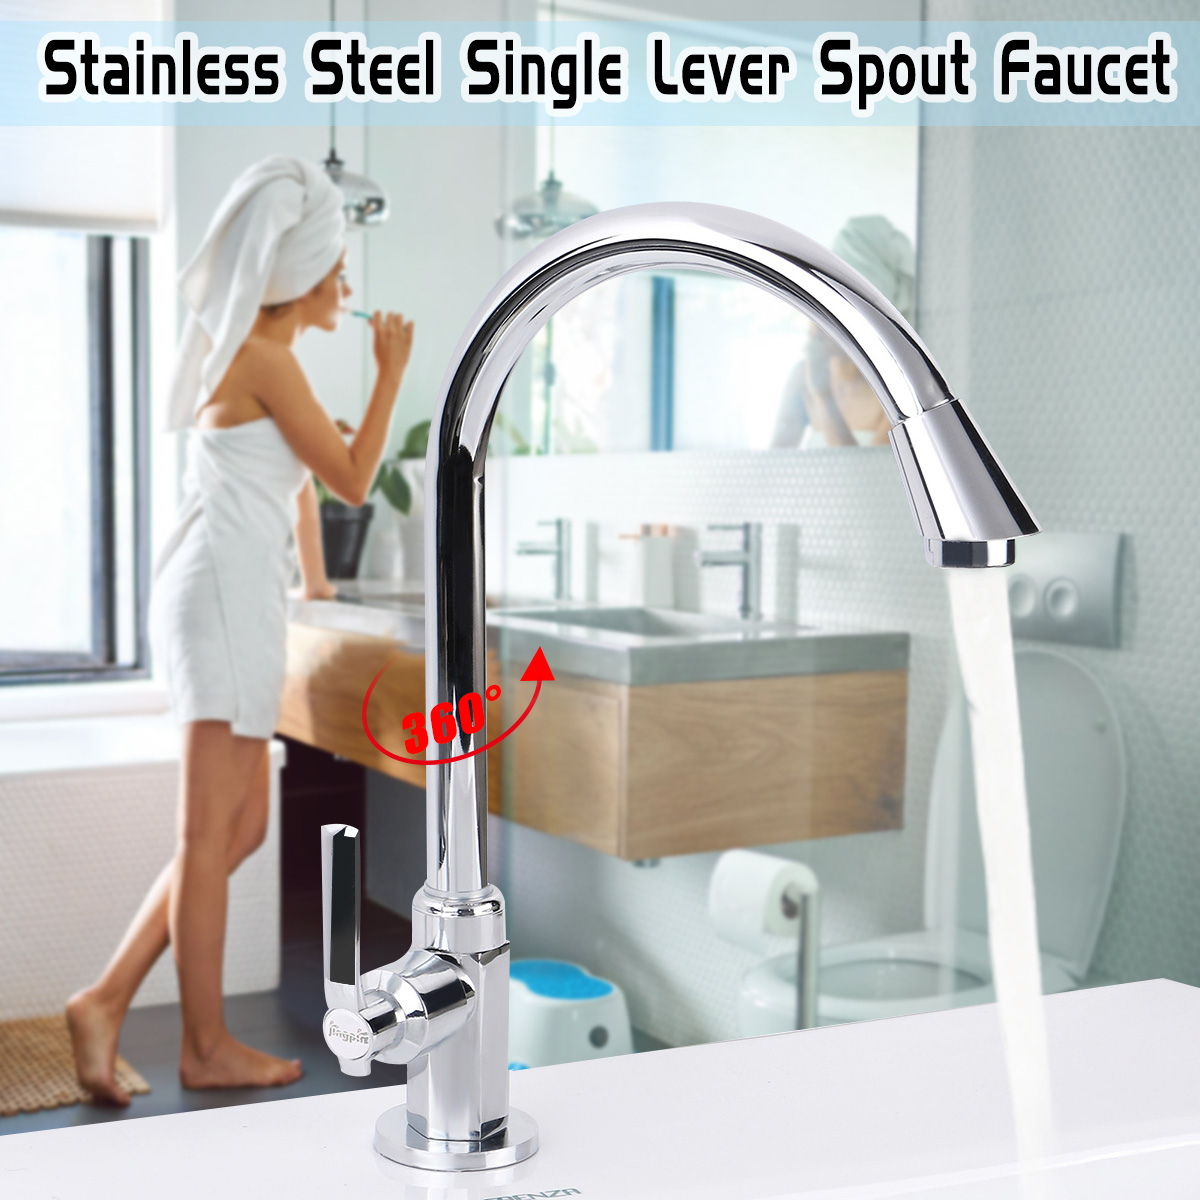 Bathroom Faucet Basin Plumbing Parts 360 Degree Rotation Kitchen Filter Faucet Single Handle Sink Faucets Chrome Tap Brass